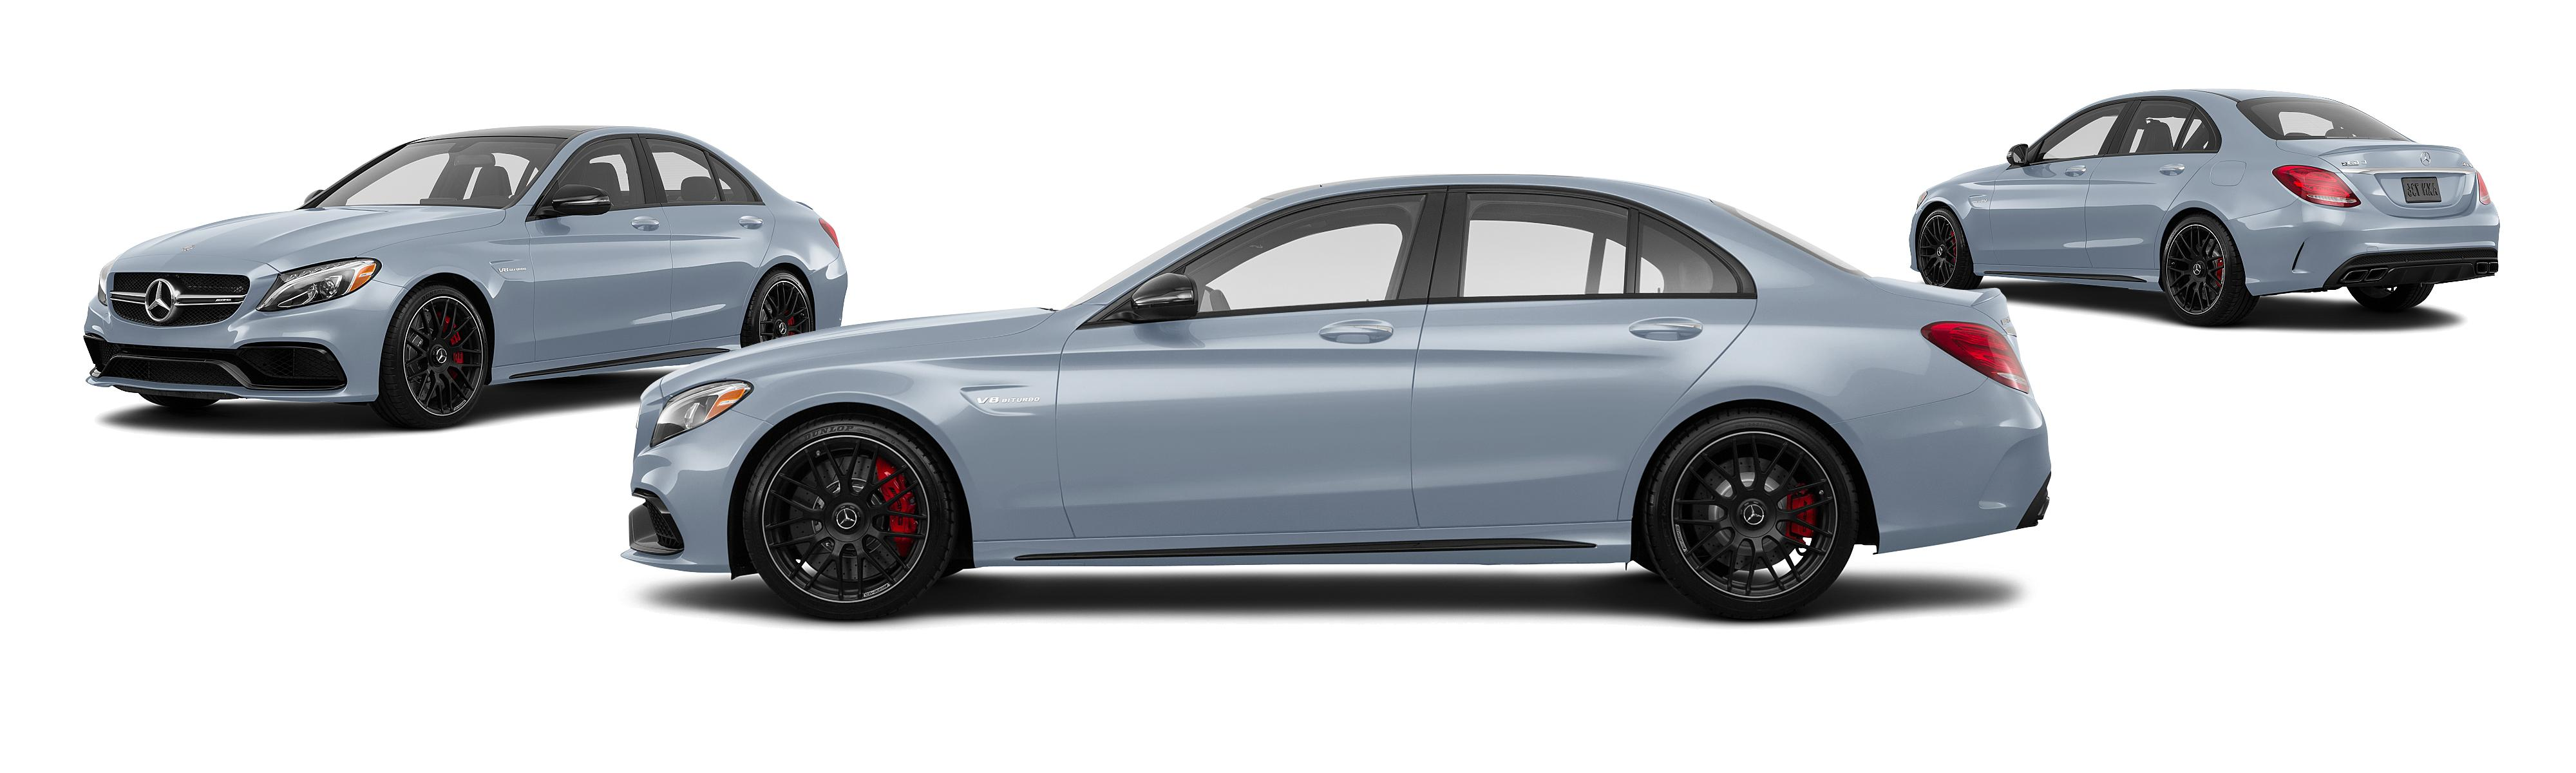 2018 Mercedes Benz C Class AMG C 63 4dr Sedan Research GrooveCar